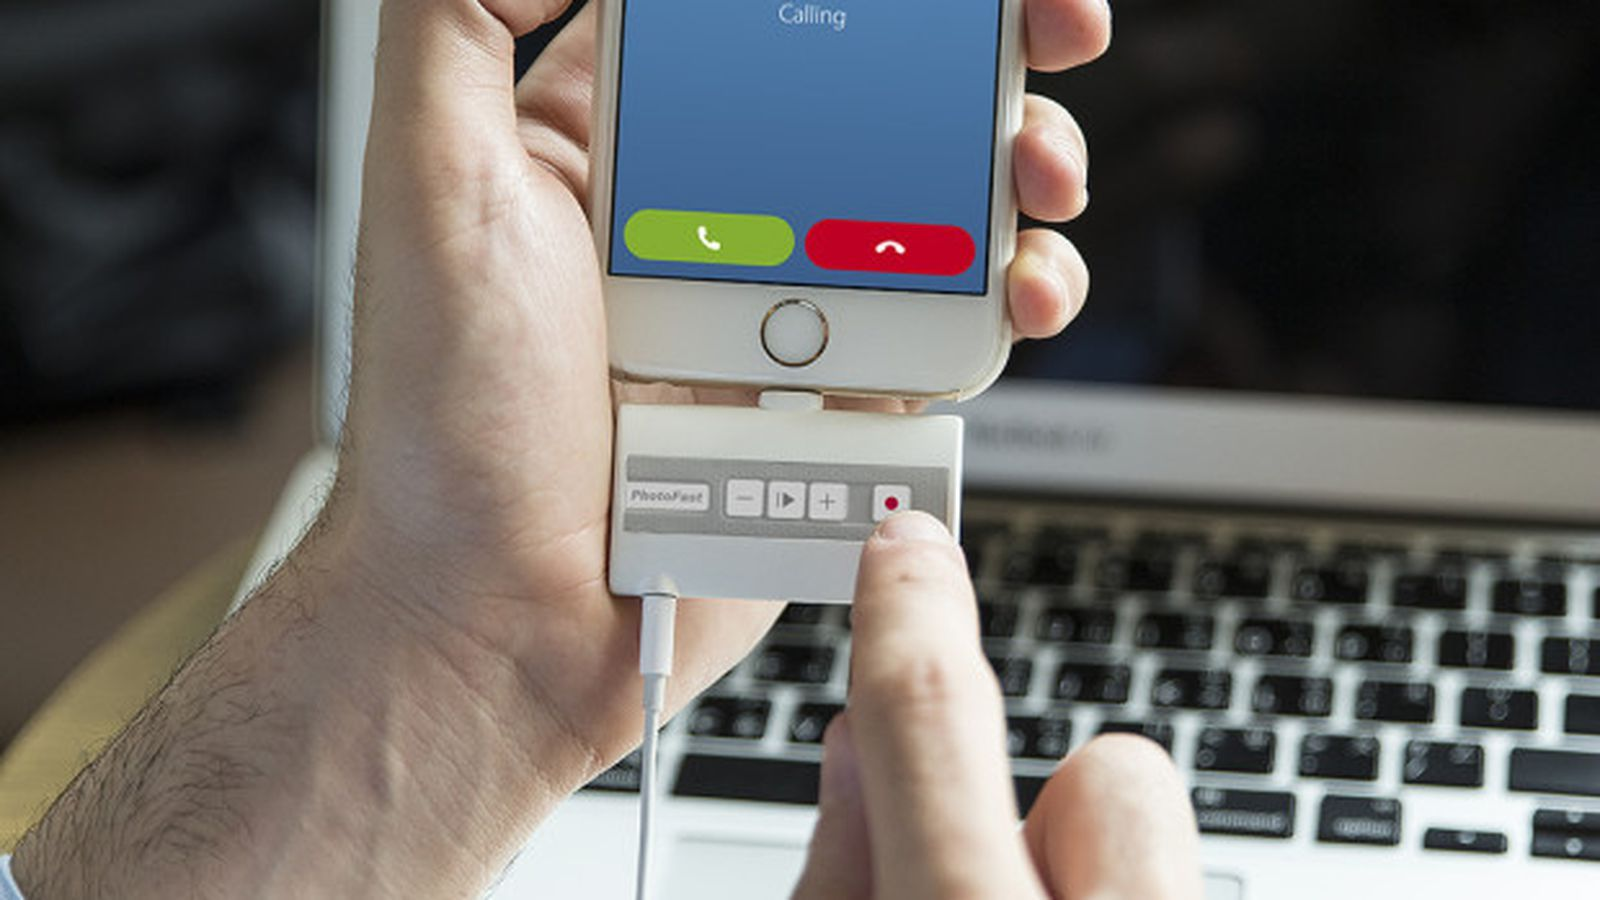 This device will let you record all calls on an iPhone